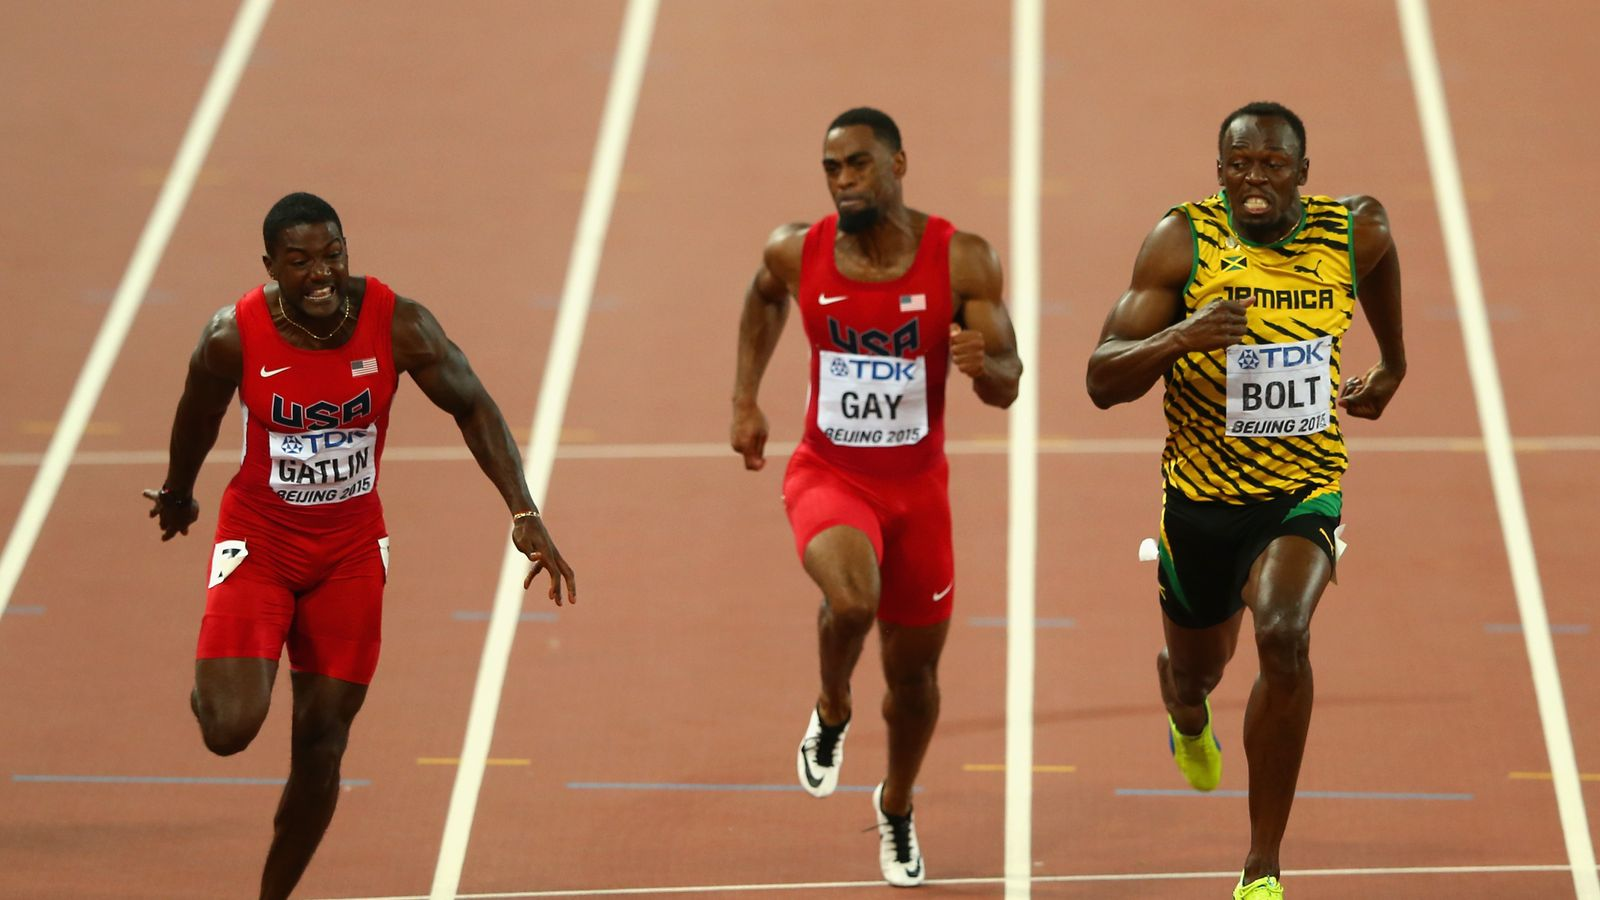 Usain Bolt claims 100m gold at World Championships | Athletics News